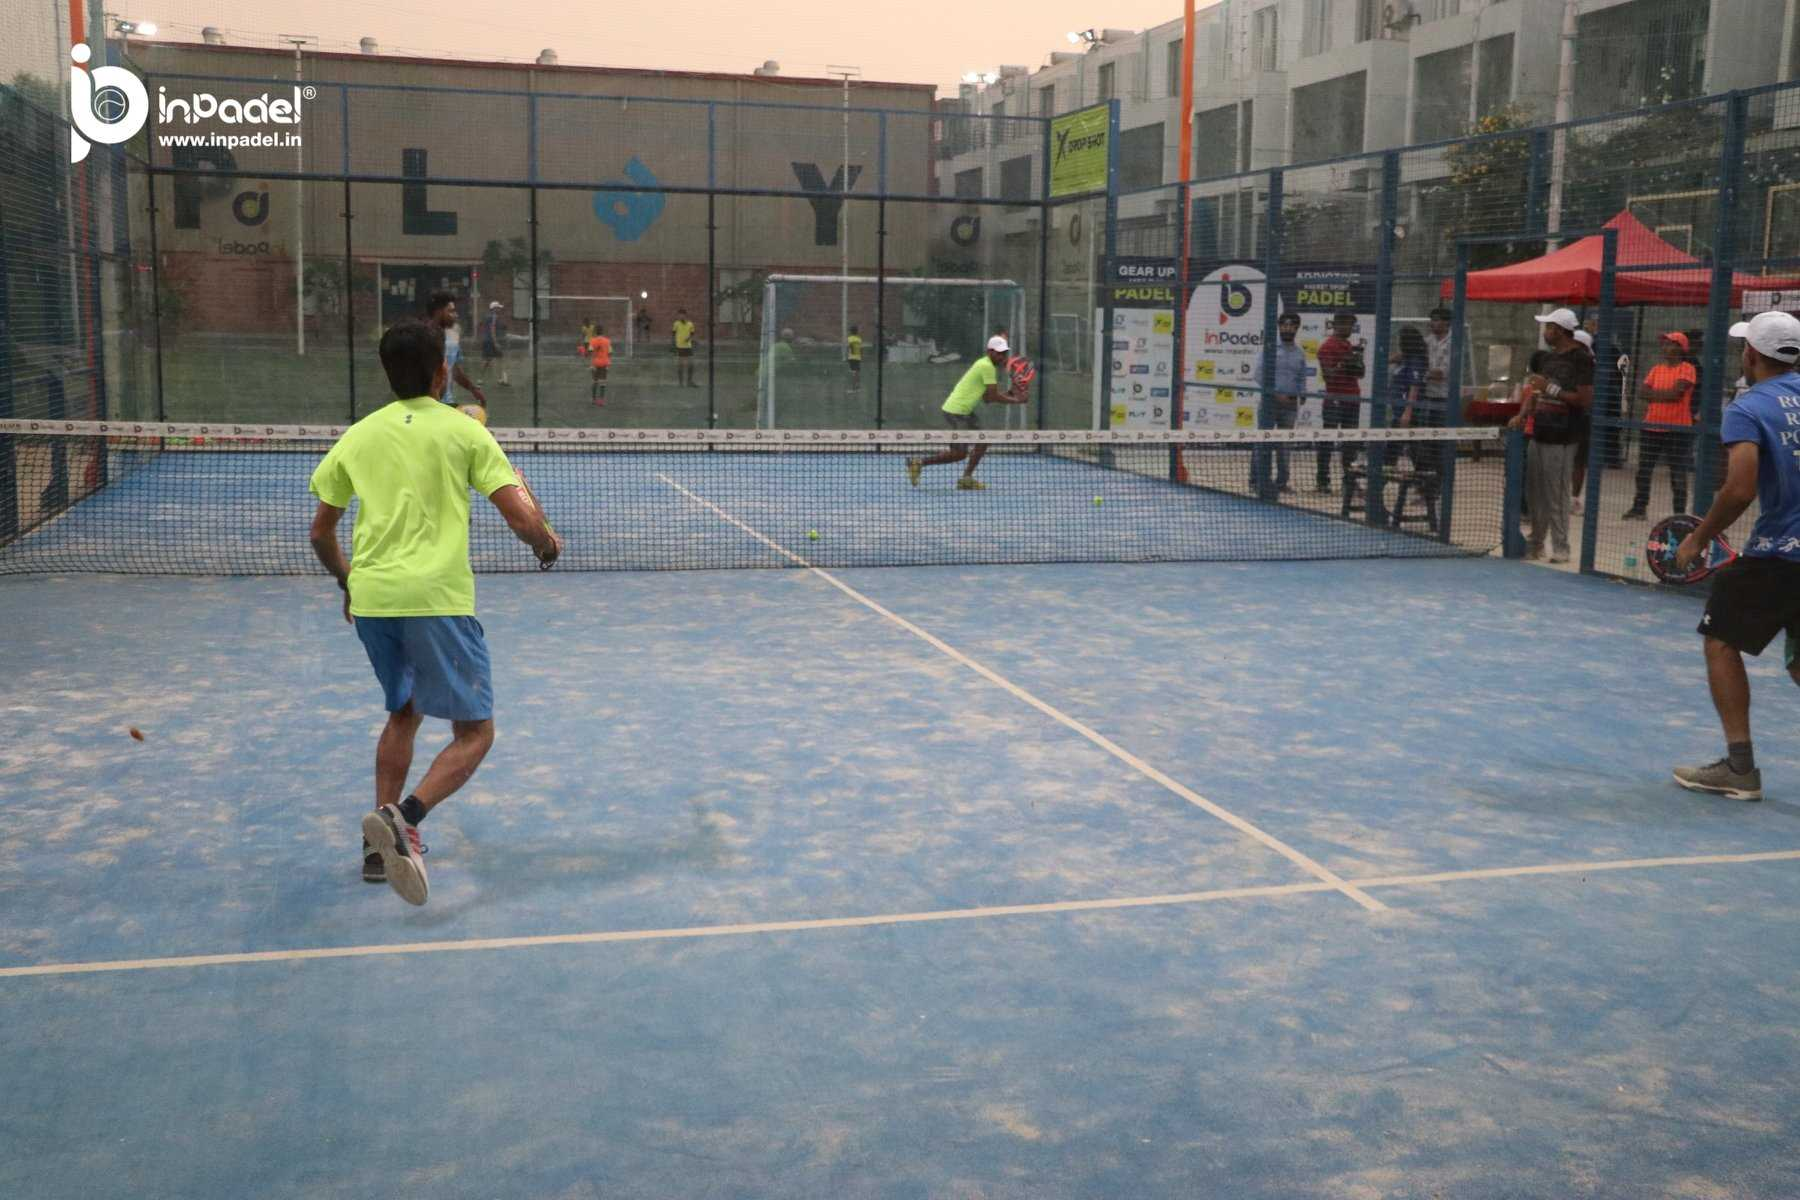 InPadel 1Yr Celebration of Padel in INDIA - Padel - Padel India (113)